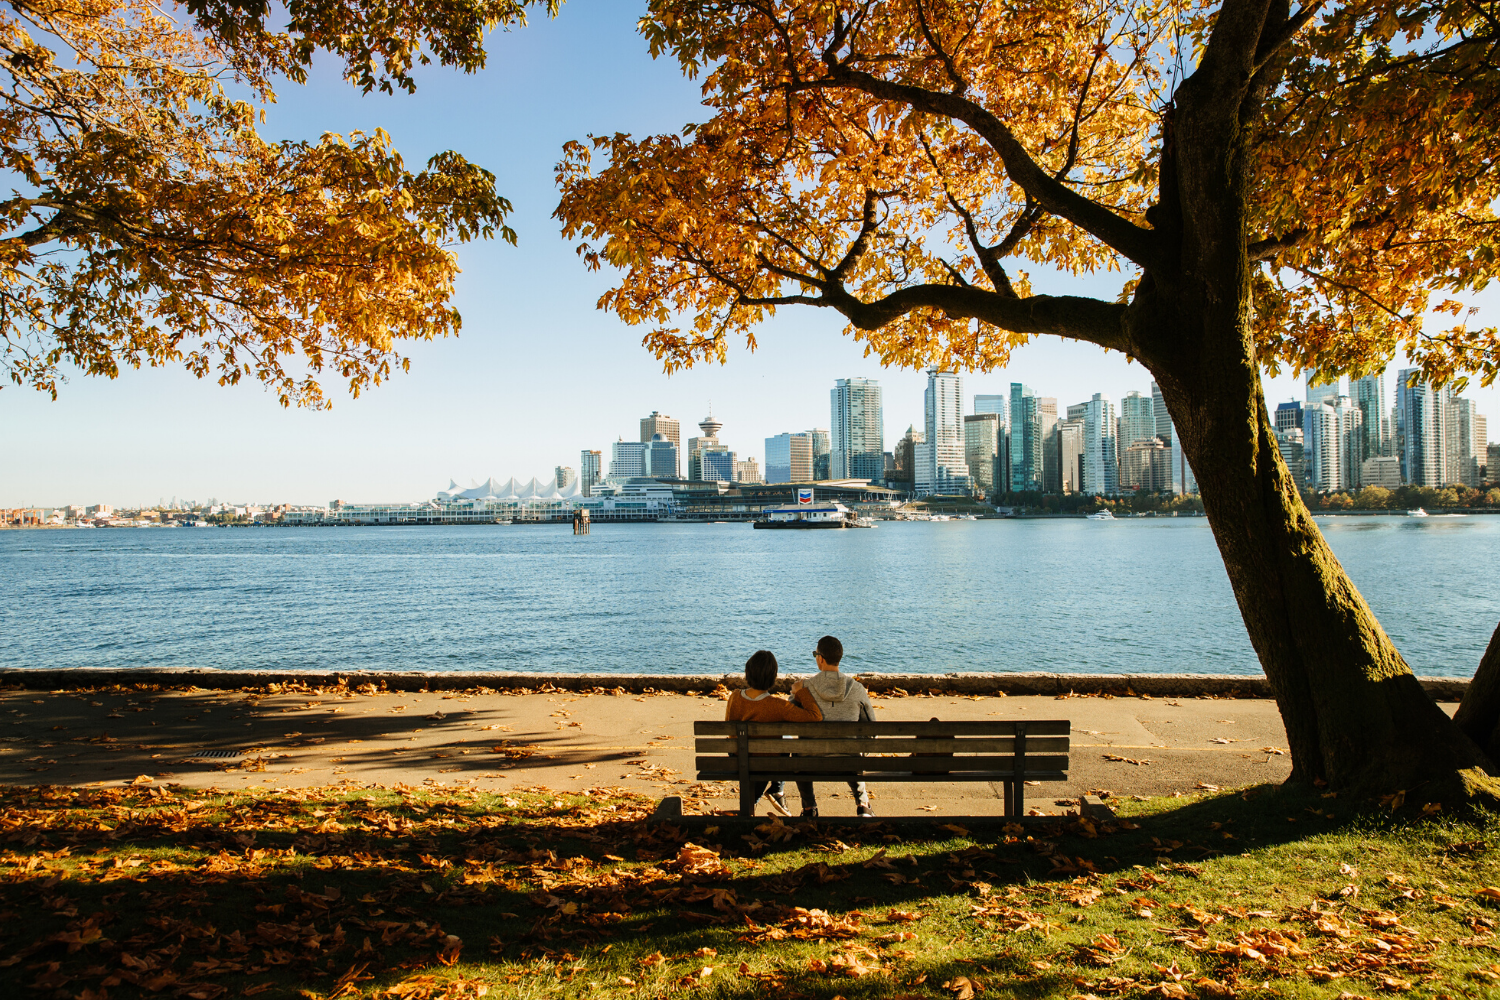 Couple taking in the skyline view from a bench in Stanley Park under trees in fall